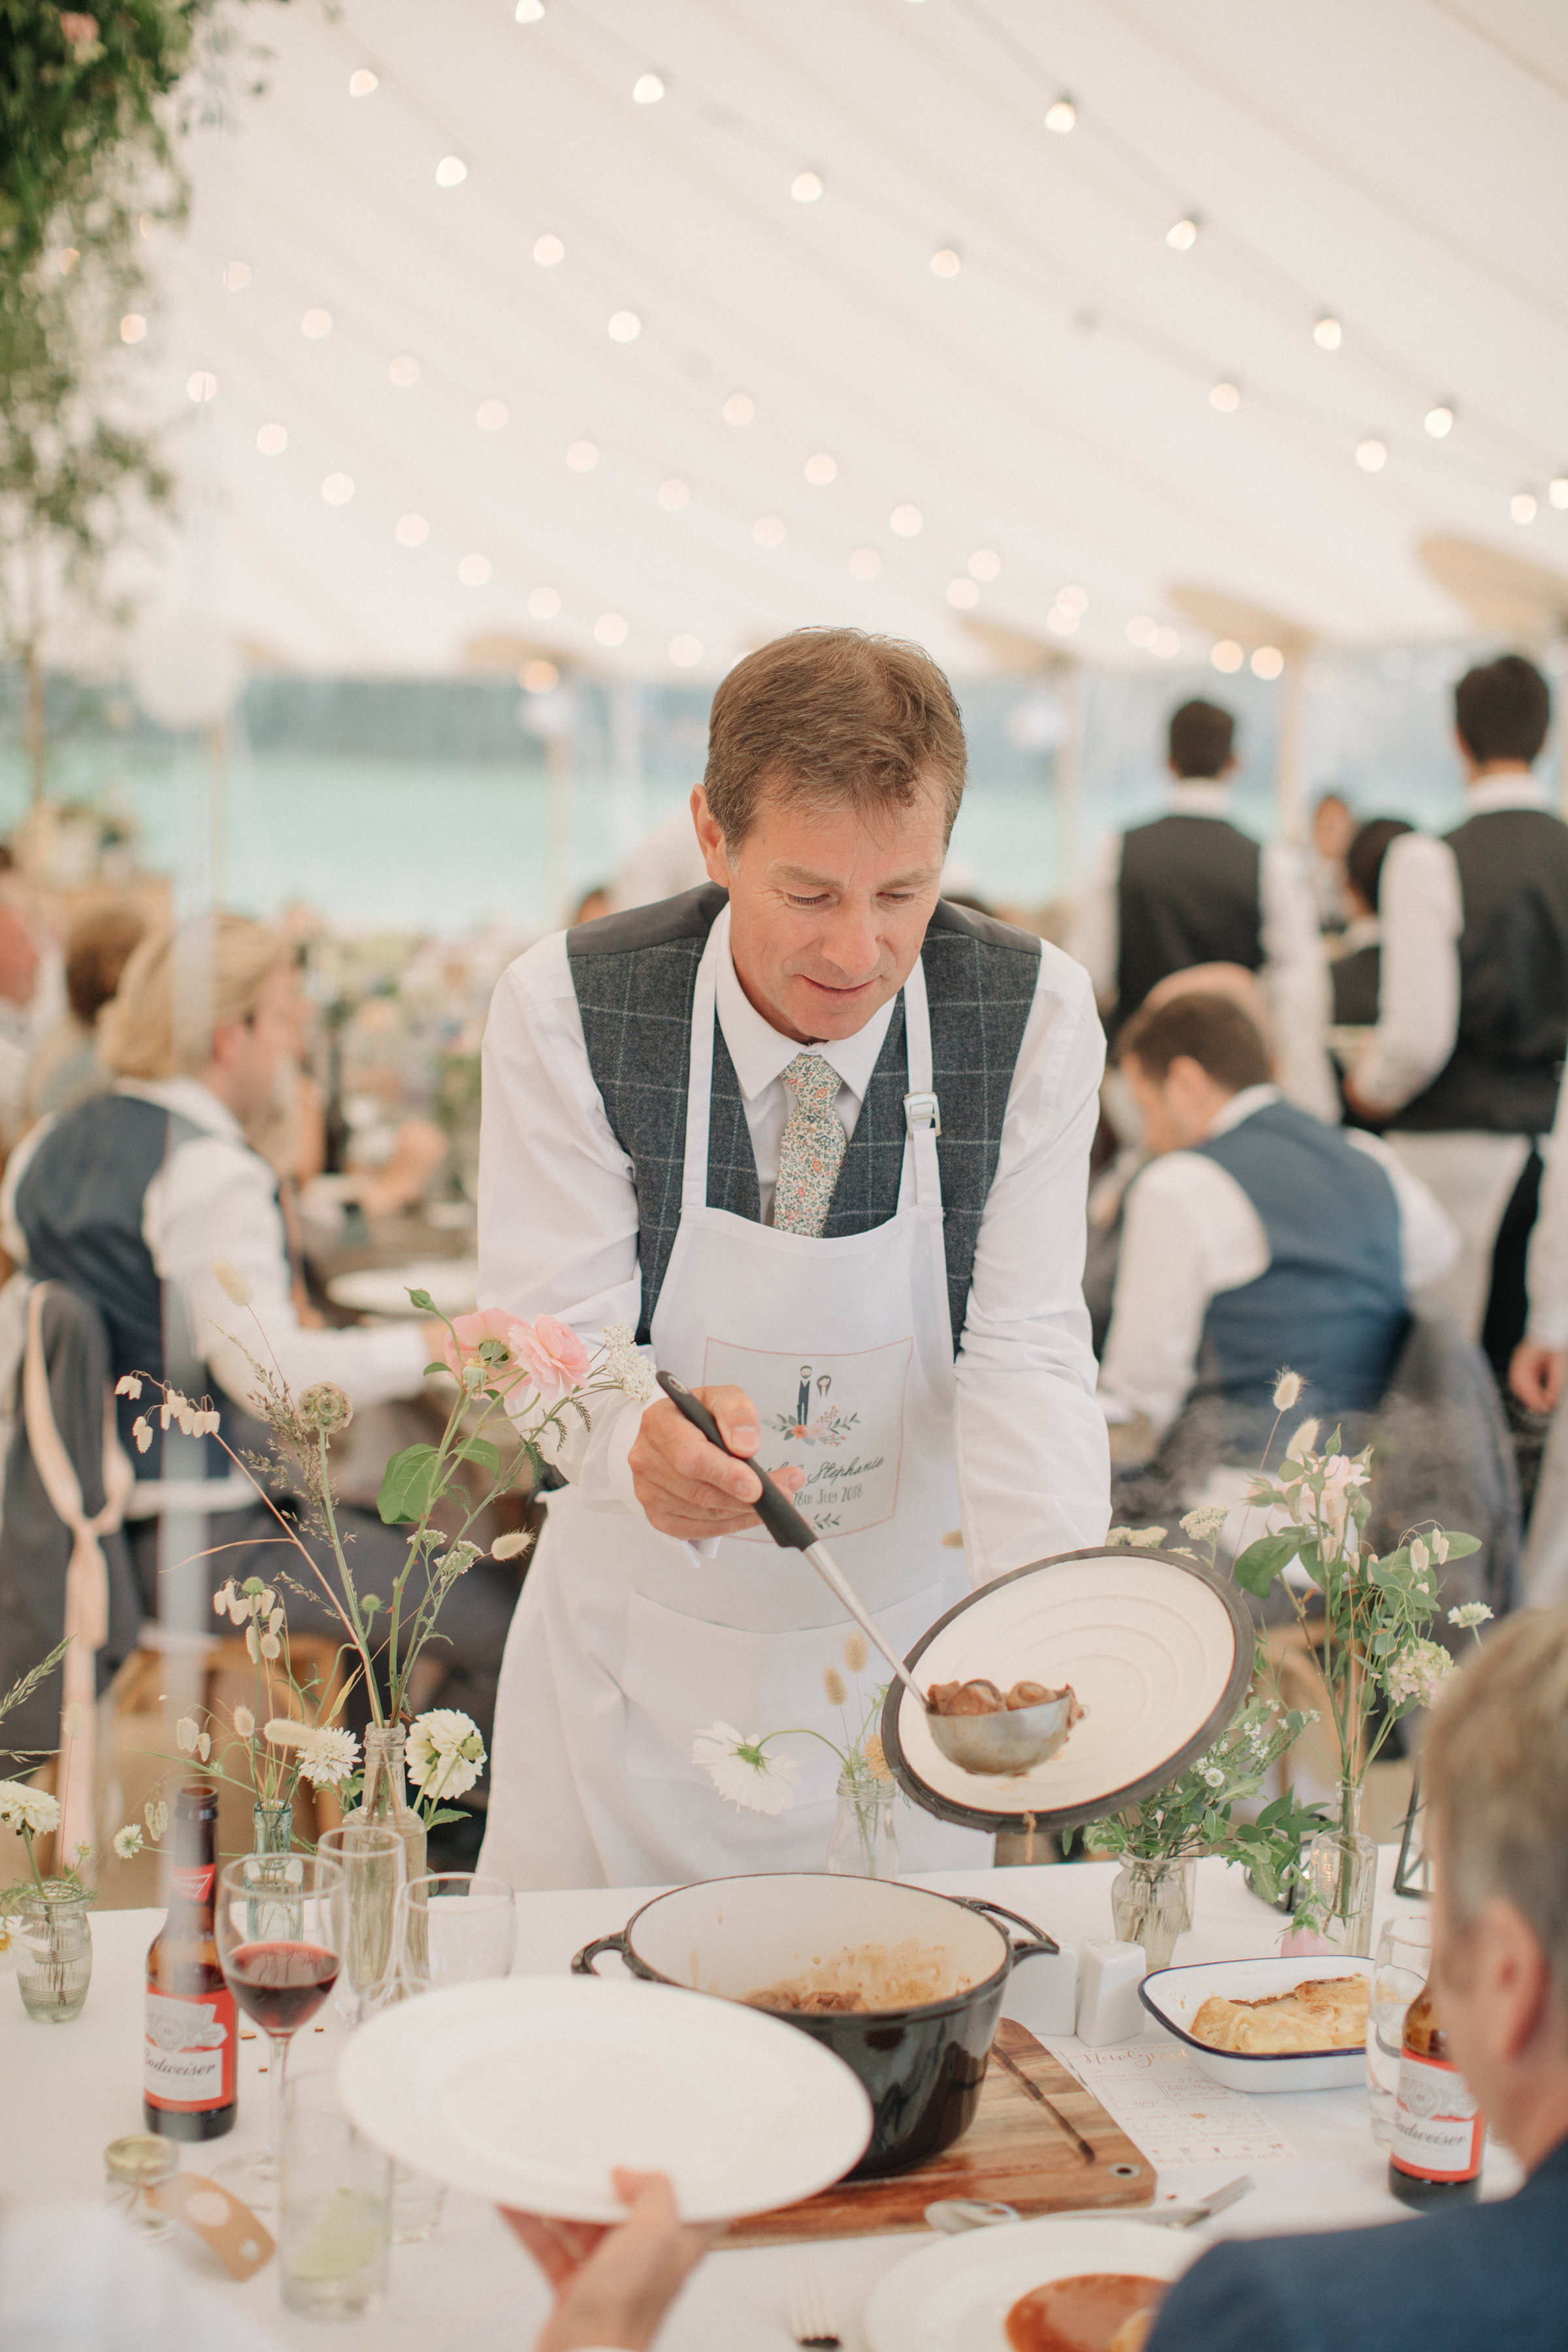 Steph & Ed's PapaKåta Sperry Tent wedding at home in Nottingham captured by M & J Photography: Interactive Wedding Dining